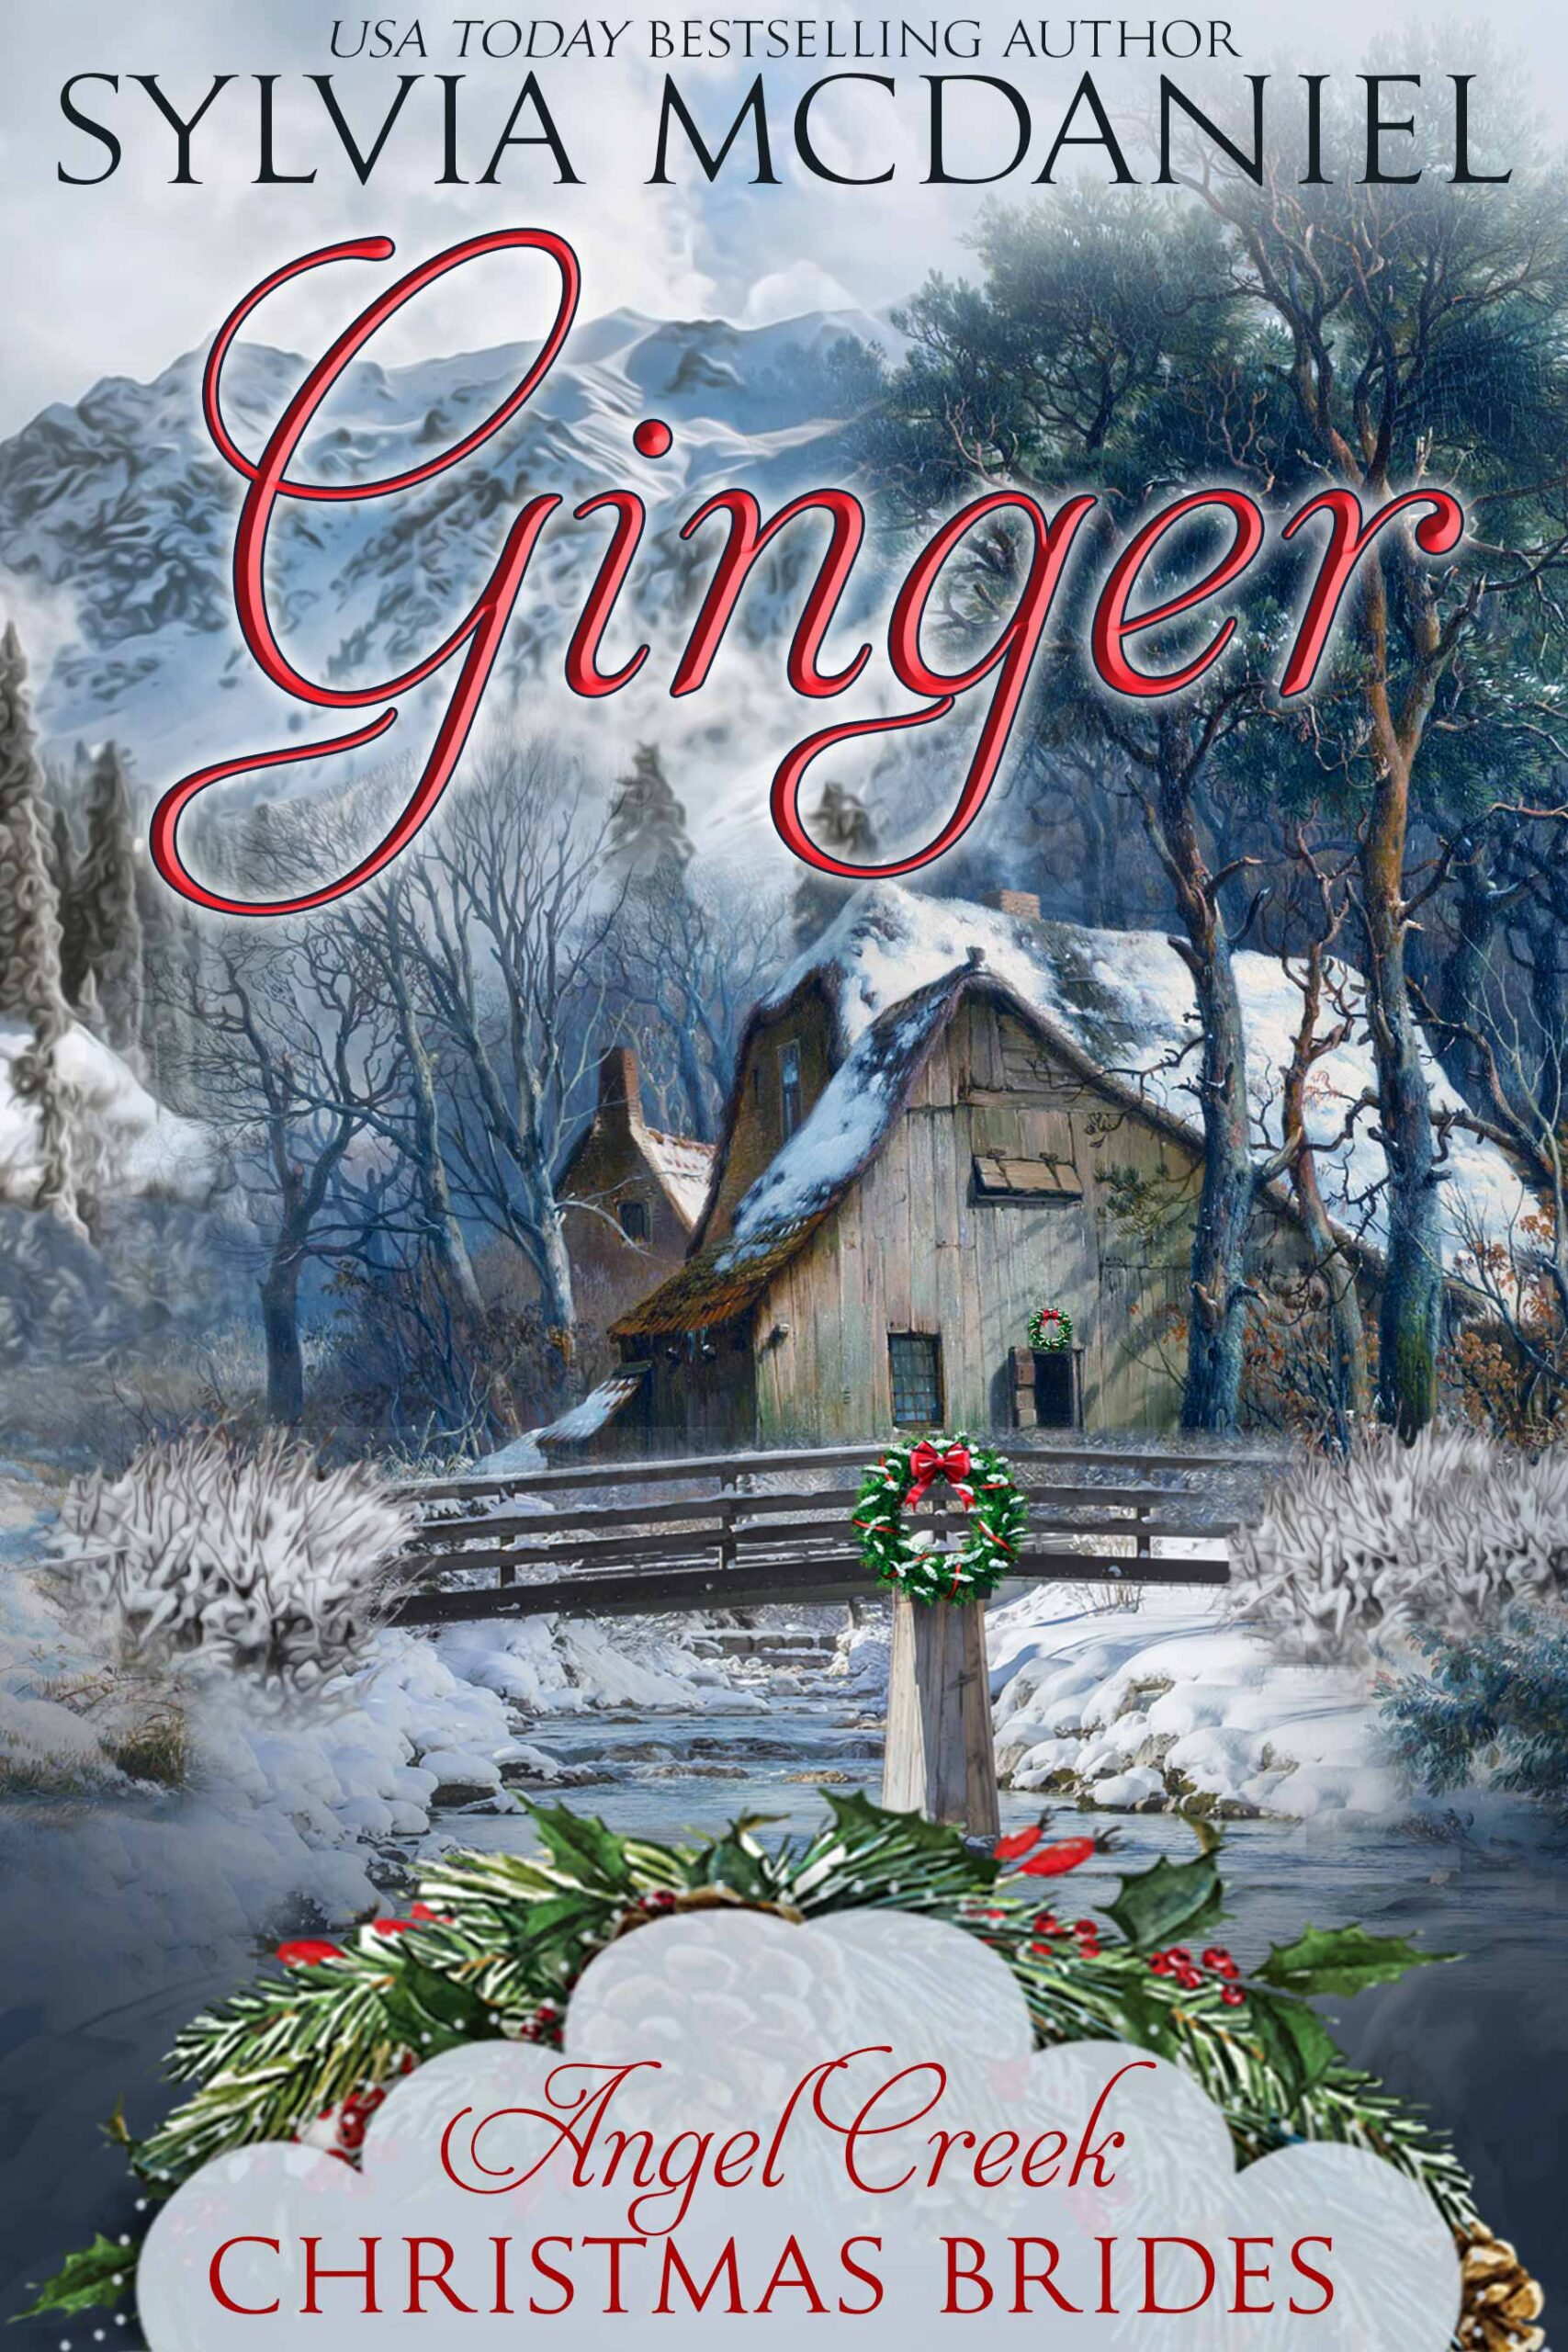 Cover of Ginger by Sylvia McDaniel. Winter scene with a house and then a bridge over a babbling stream.